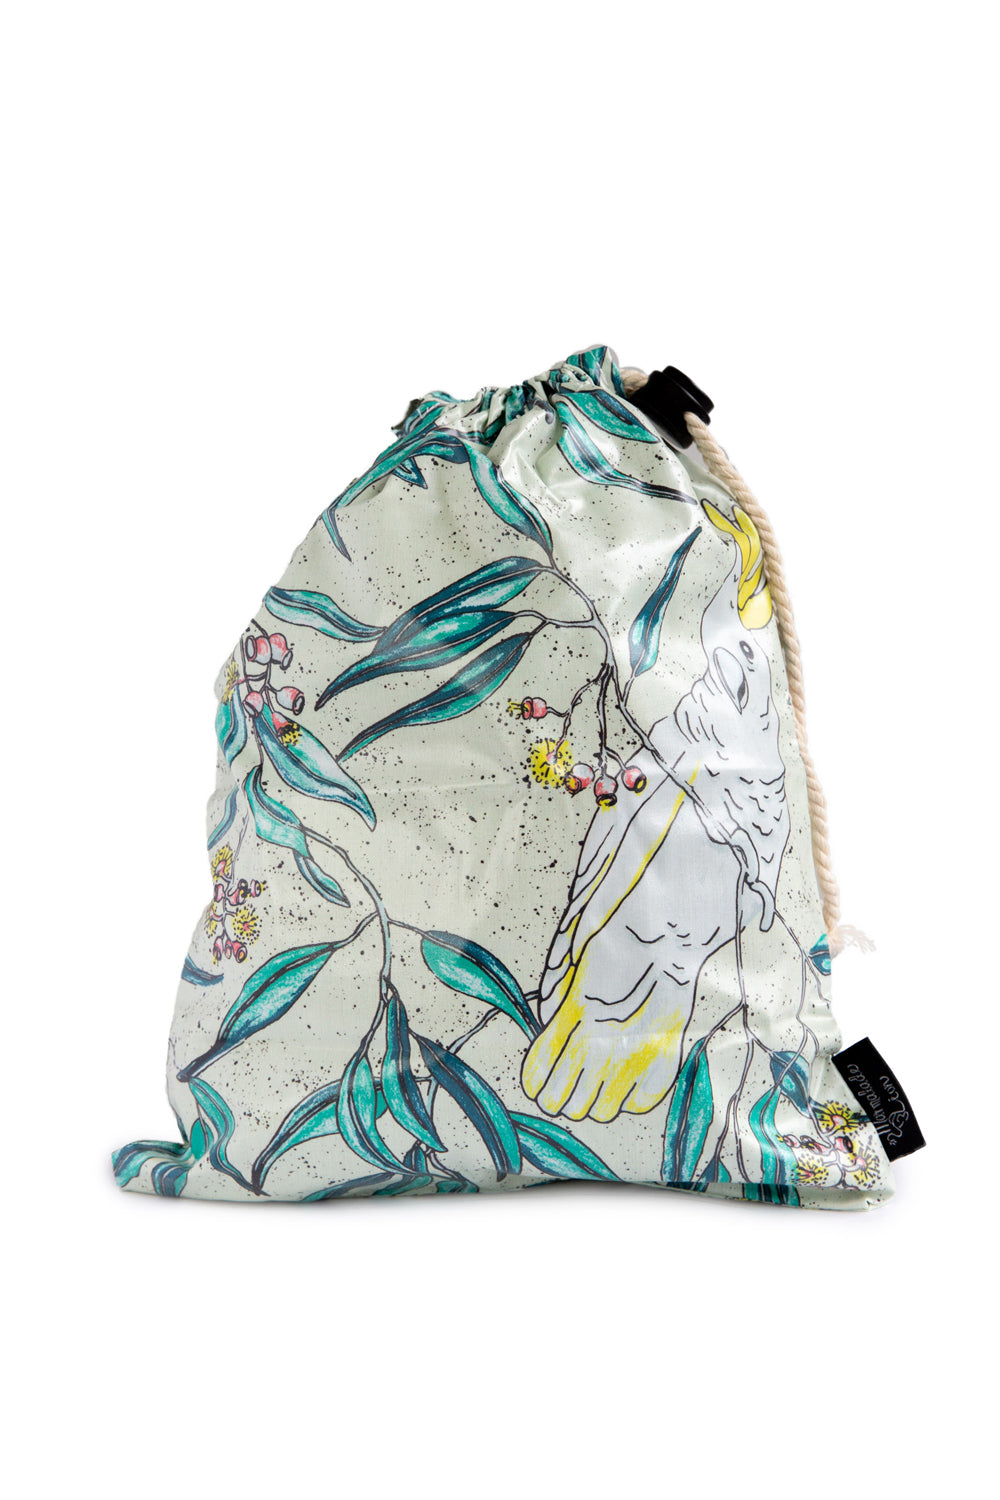 Cockatoo Wet Bag (Pre-Order Only)